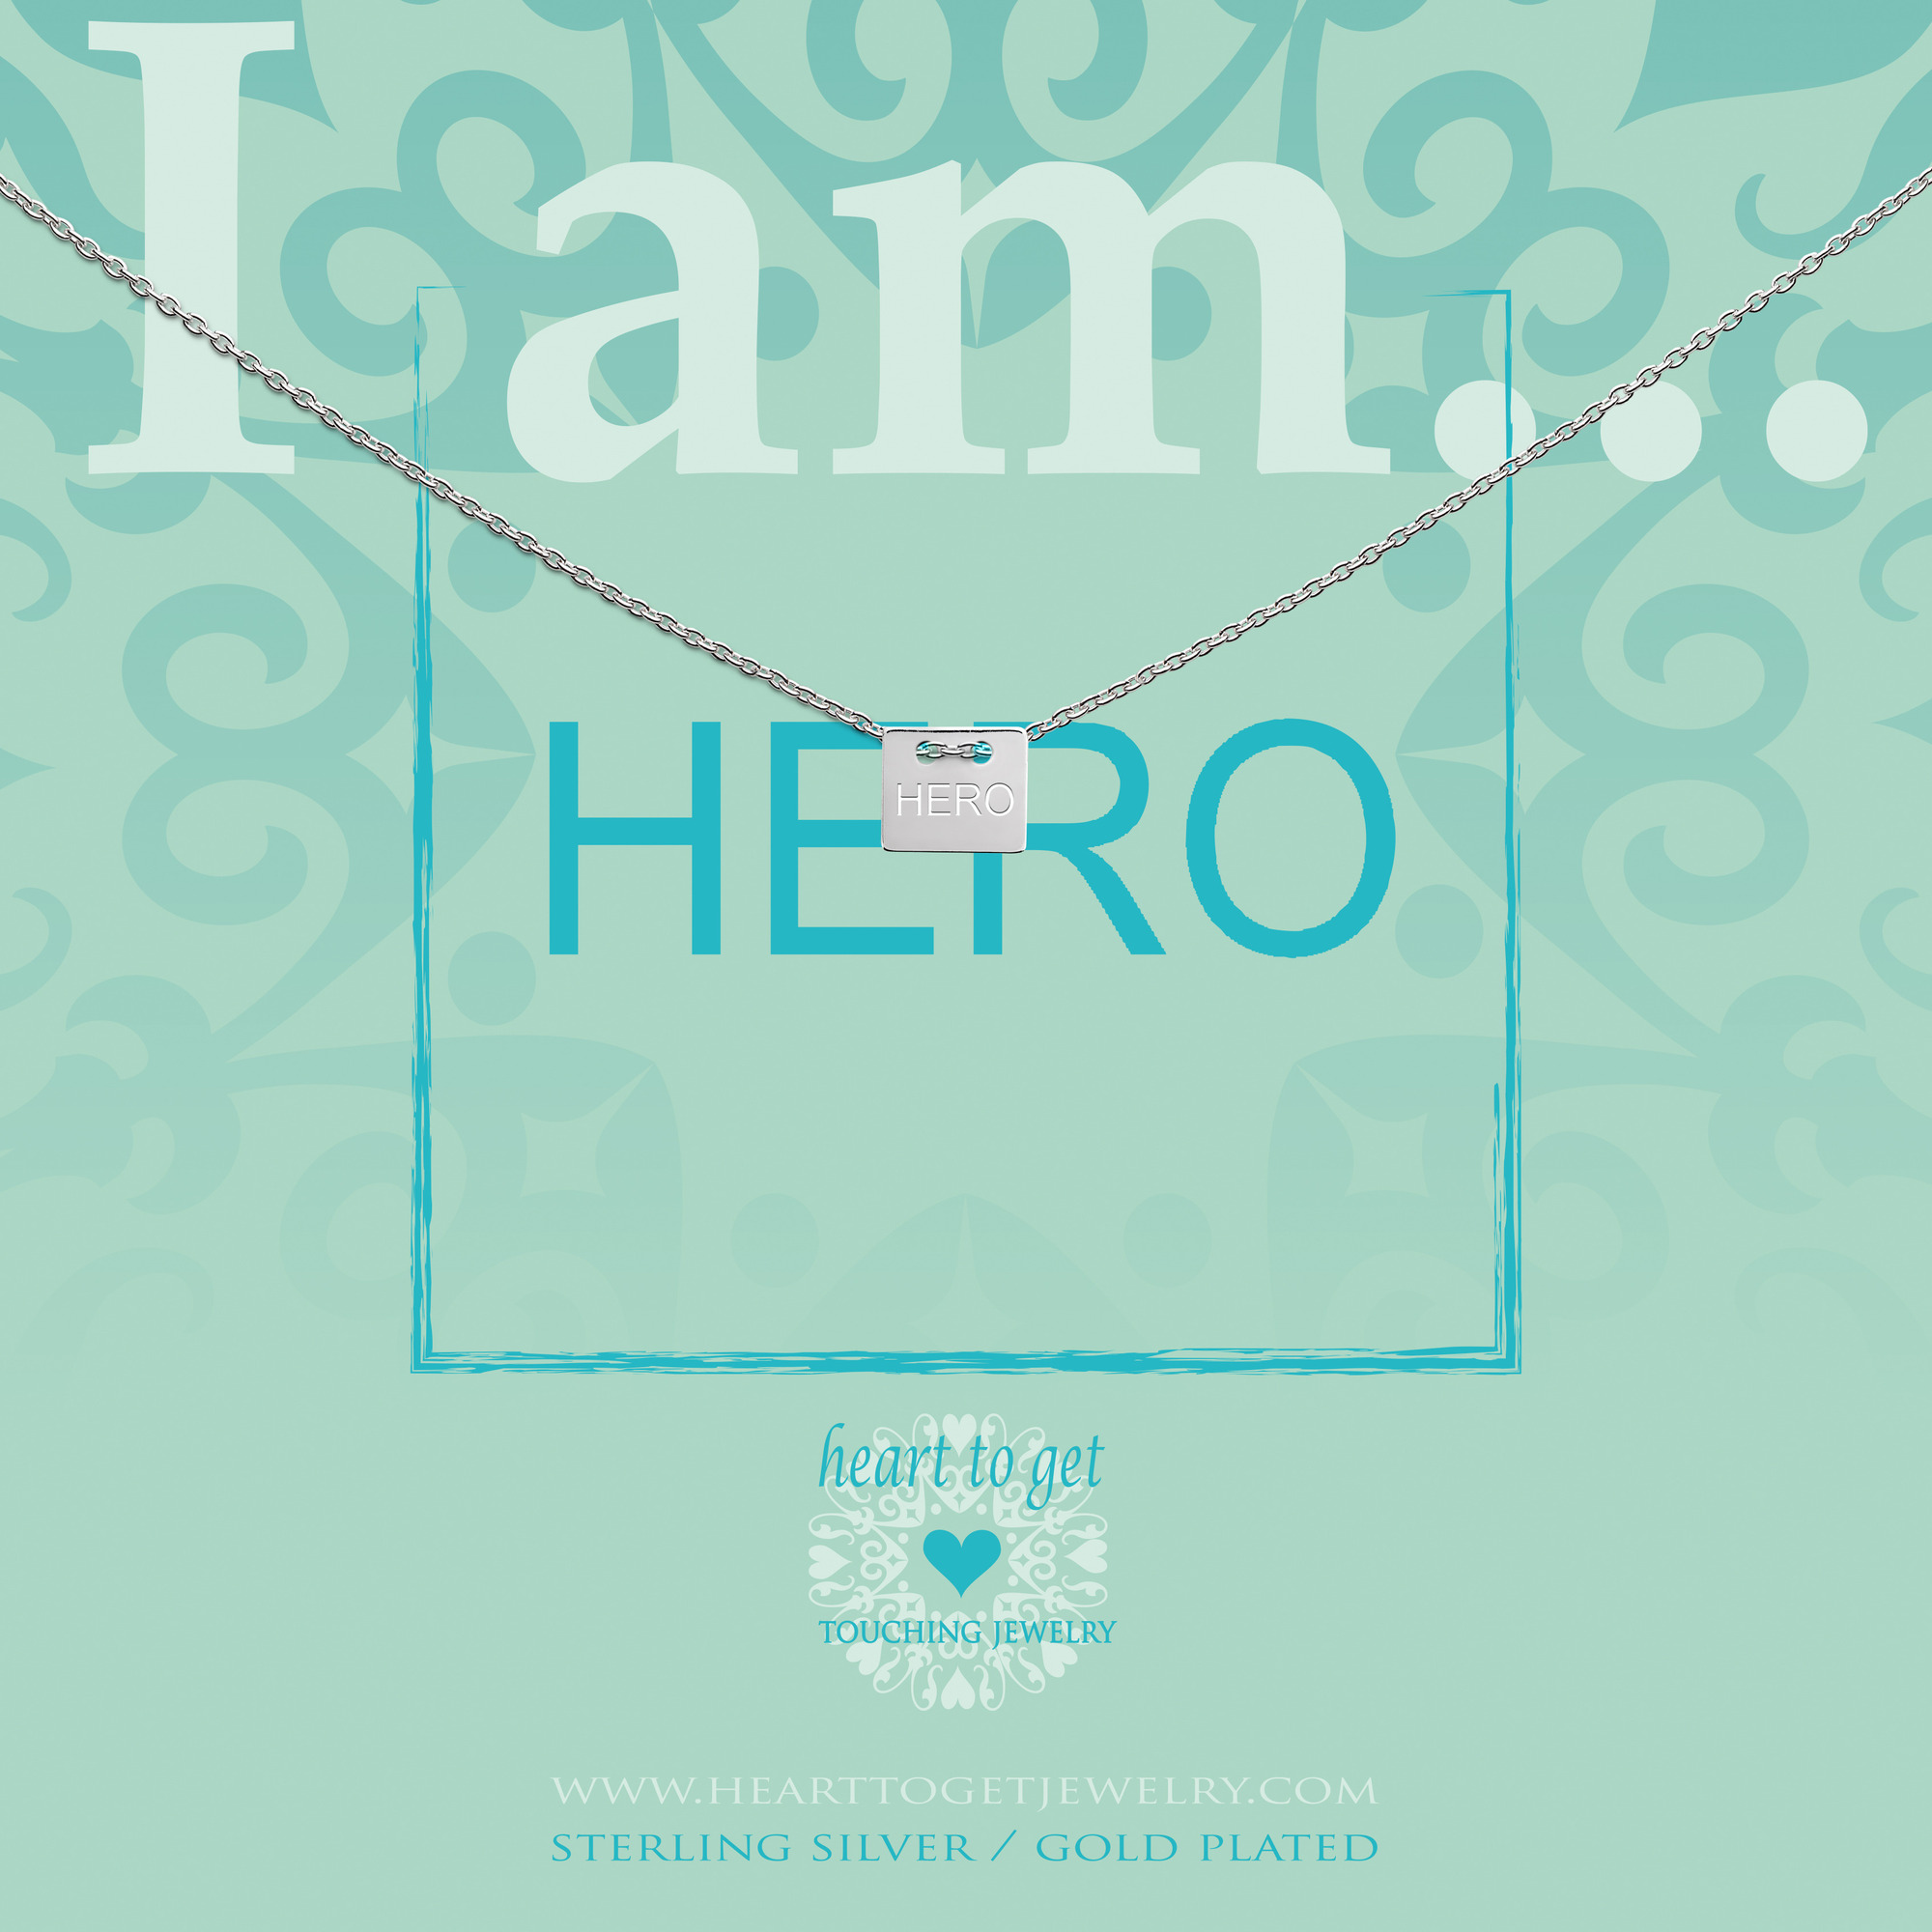 Heart to get IAM415N-HERO-S hero ketting zilver